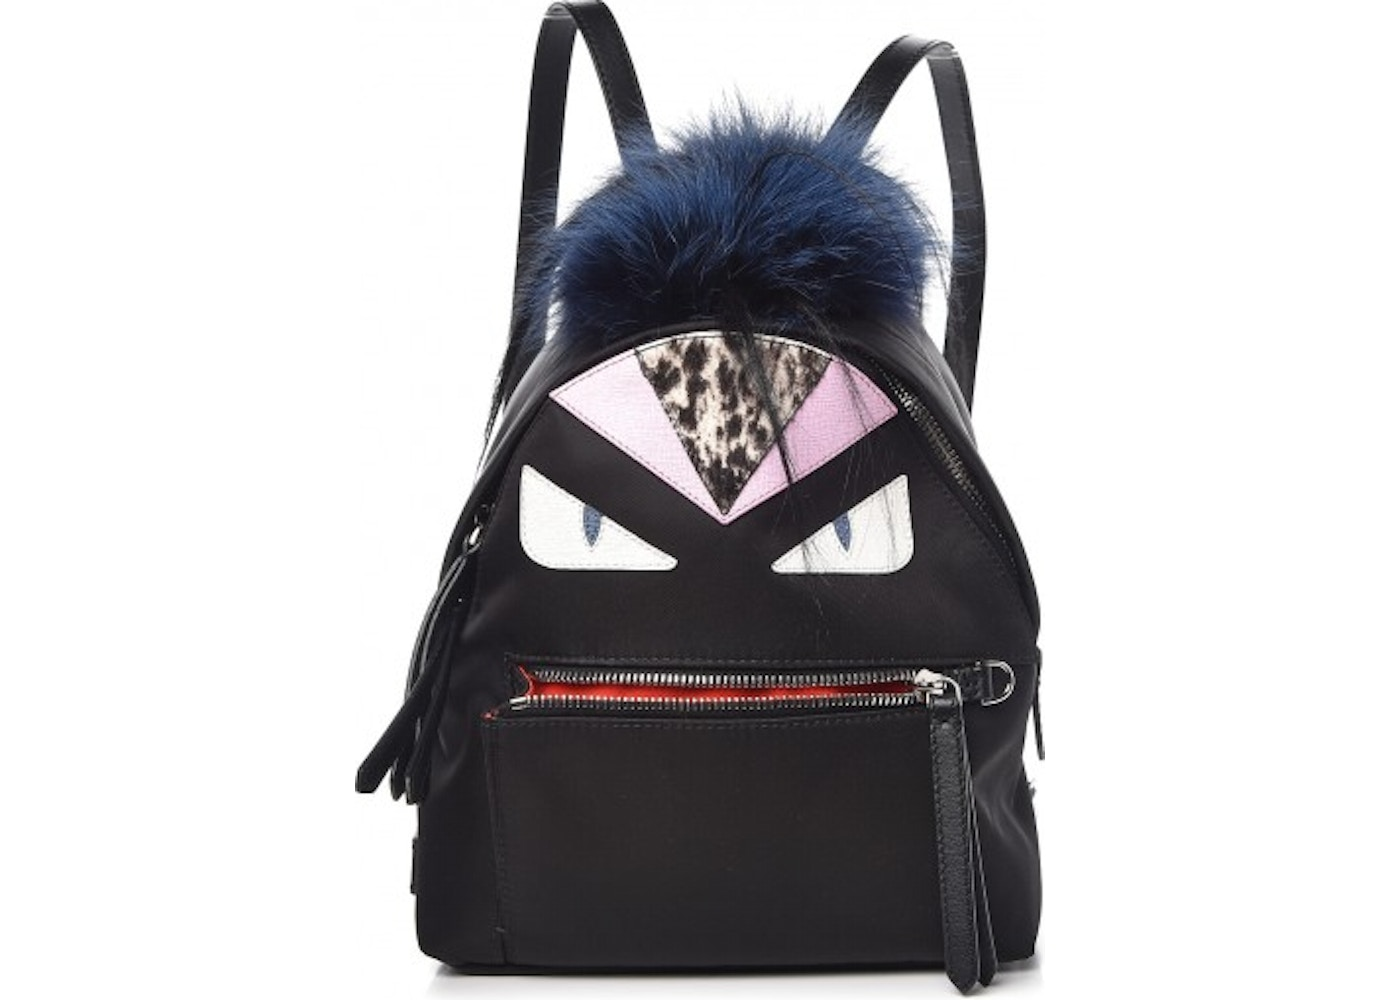 Fendi Monster Backpack Fur Vitello Nylon Mini Black 06cc04dbe83d1